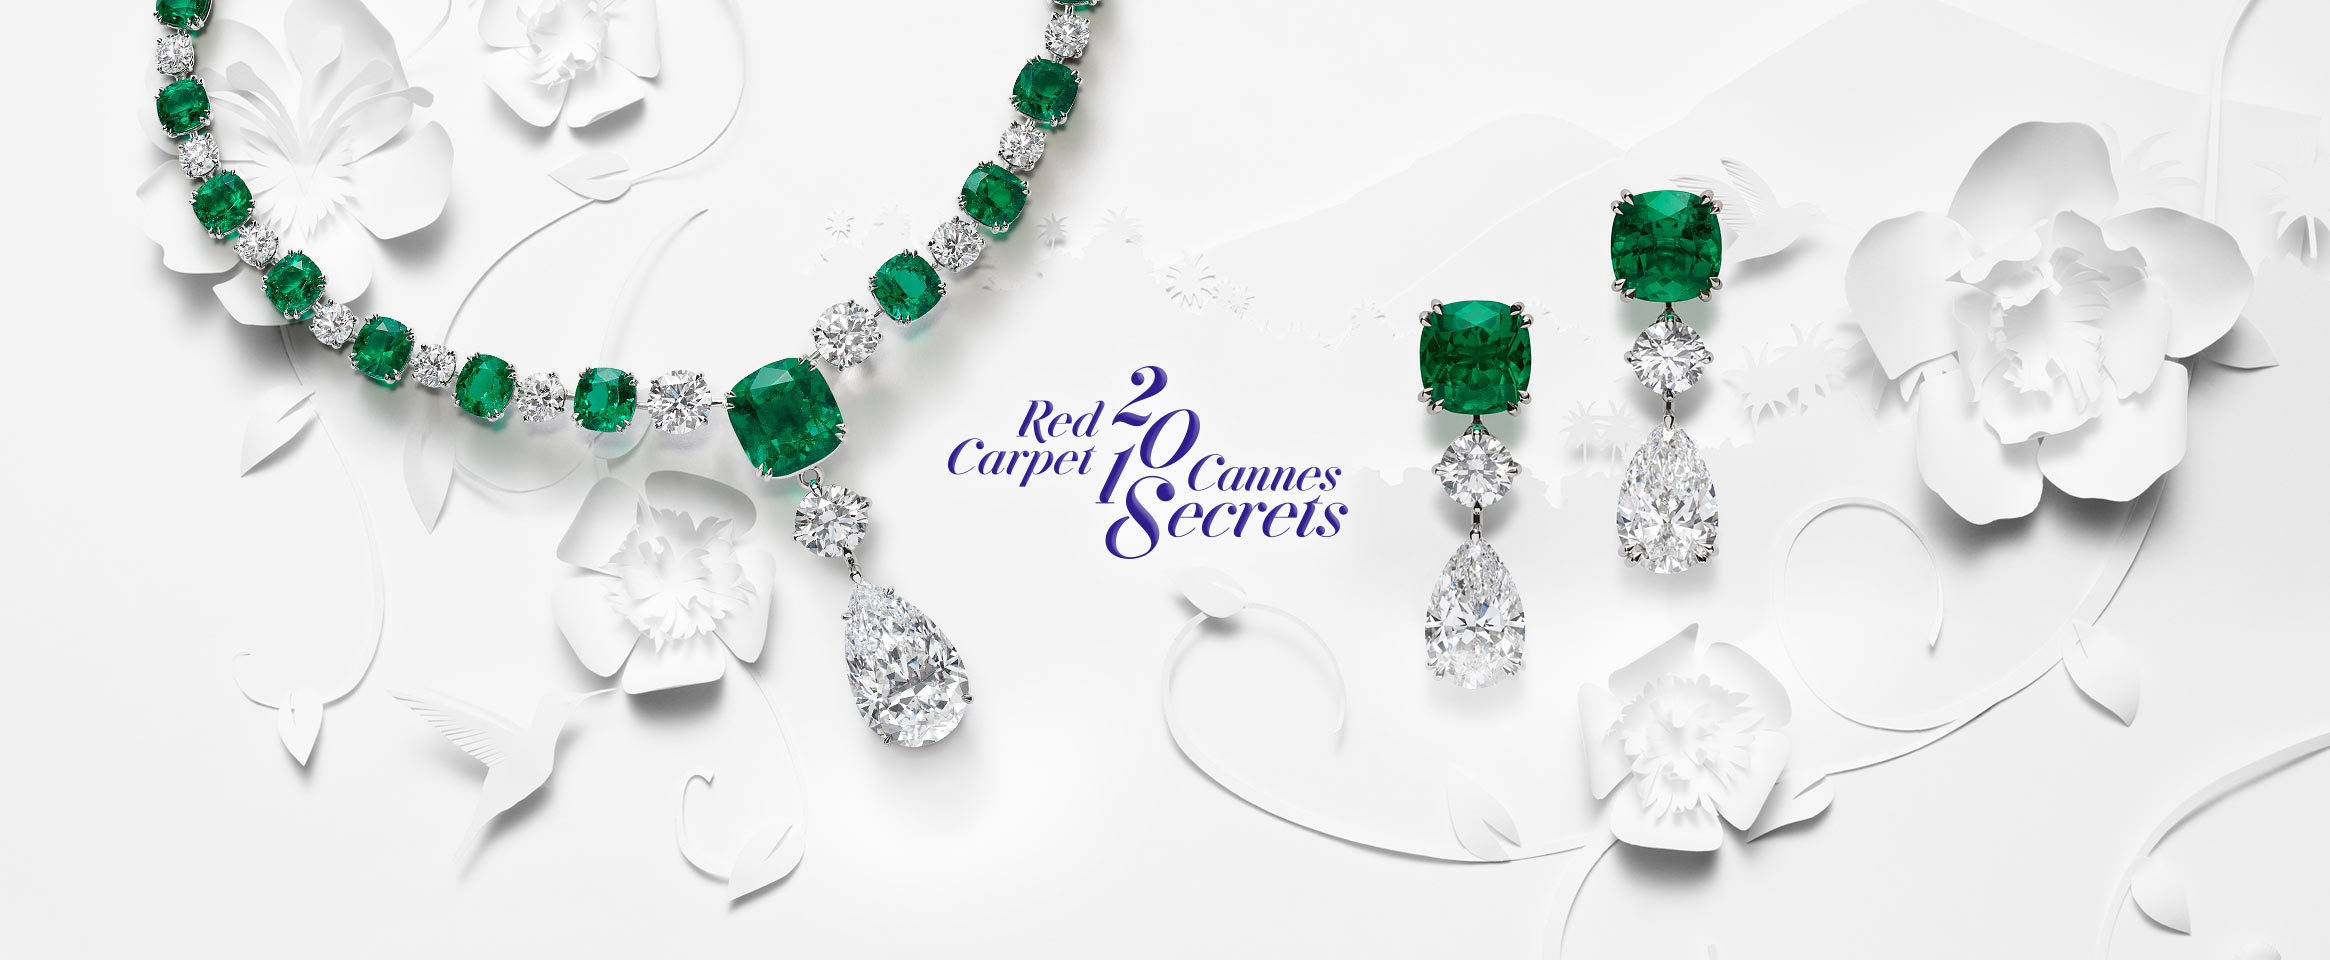 Header of Chopard's Red Carpet Collection 2018